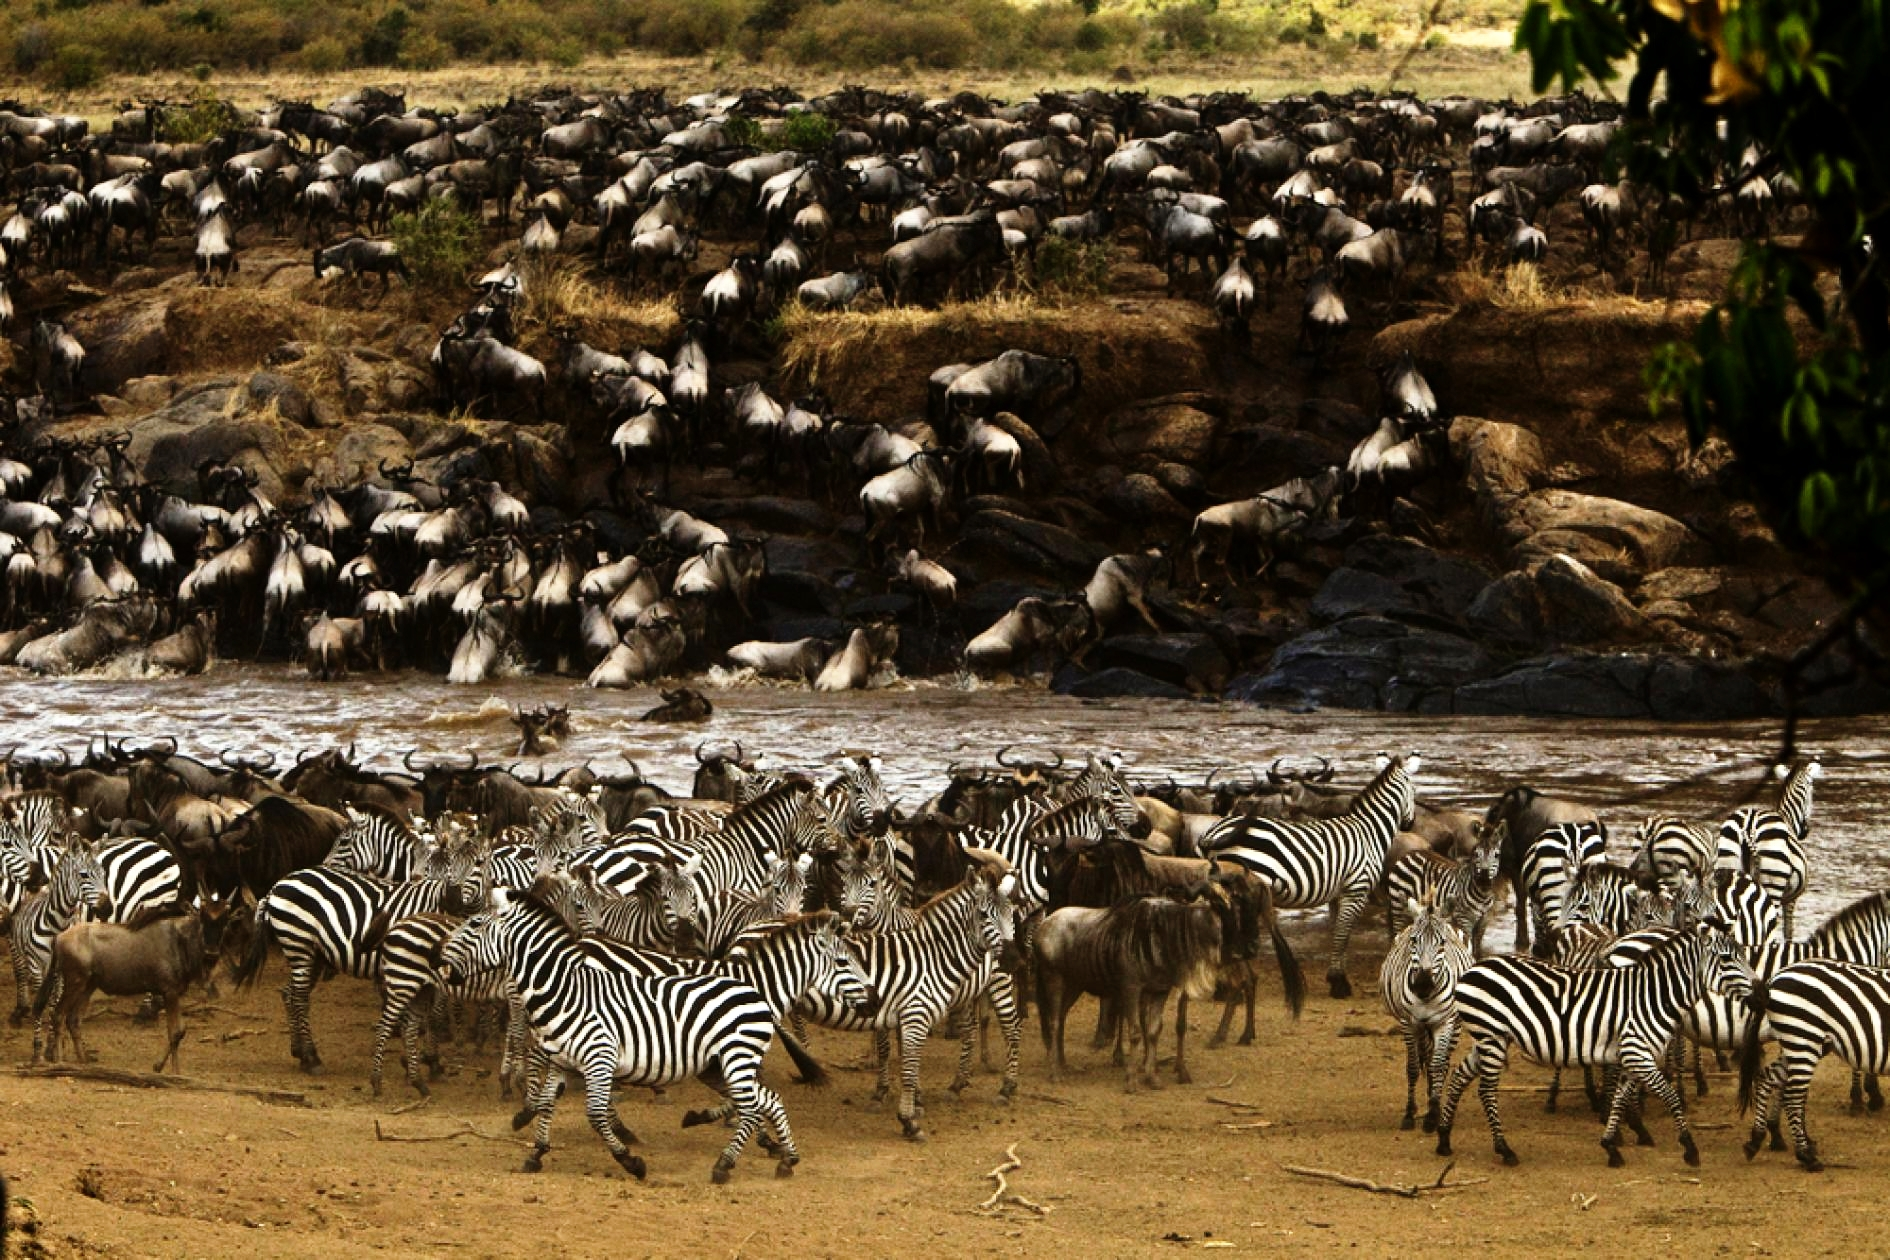 Mara Plains_Copyright_Beverly_Joubert_Mara_Wildlife_Kenya_5273_zebras.adapt.945.2.jpg